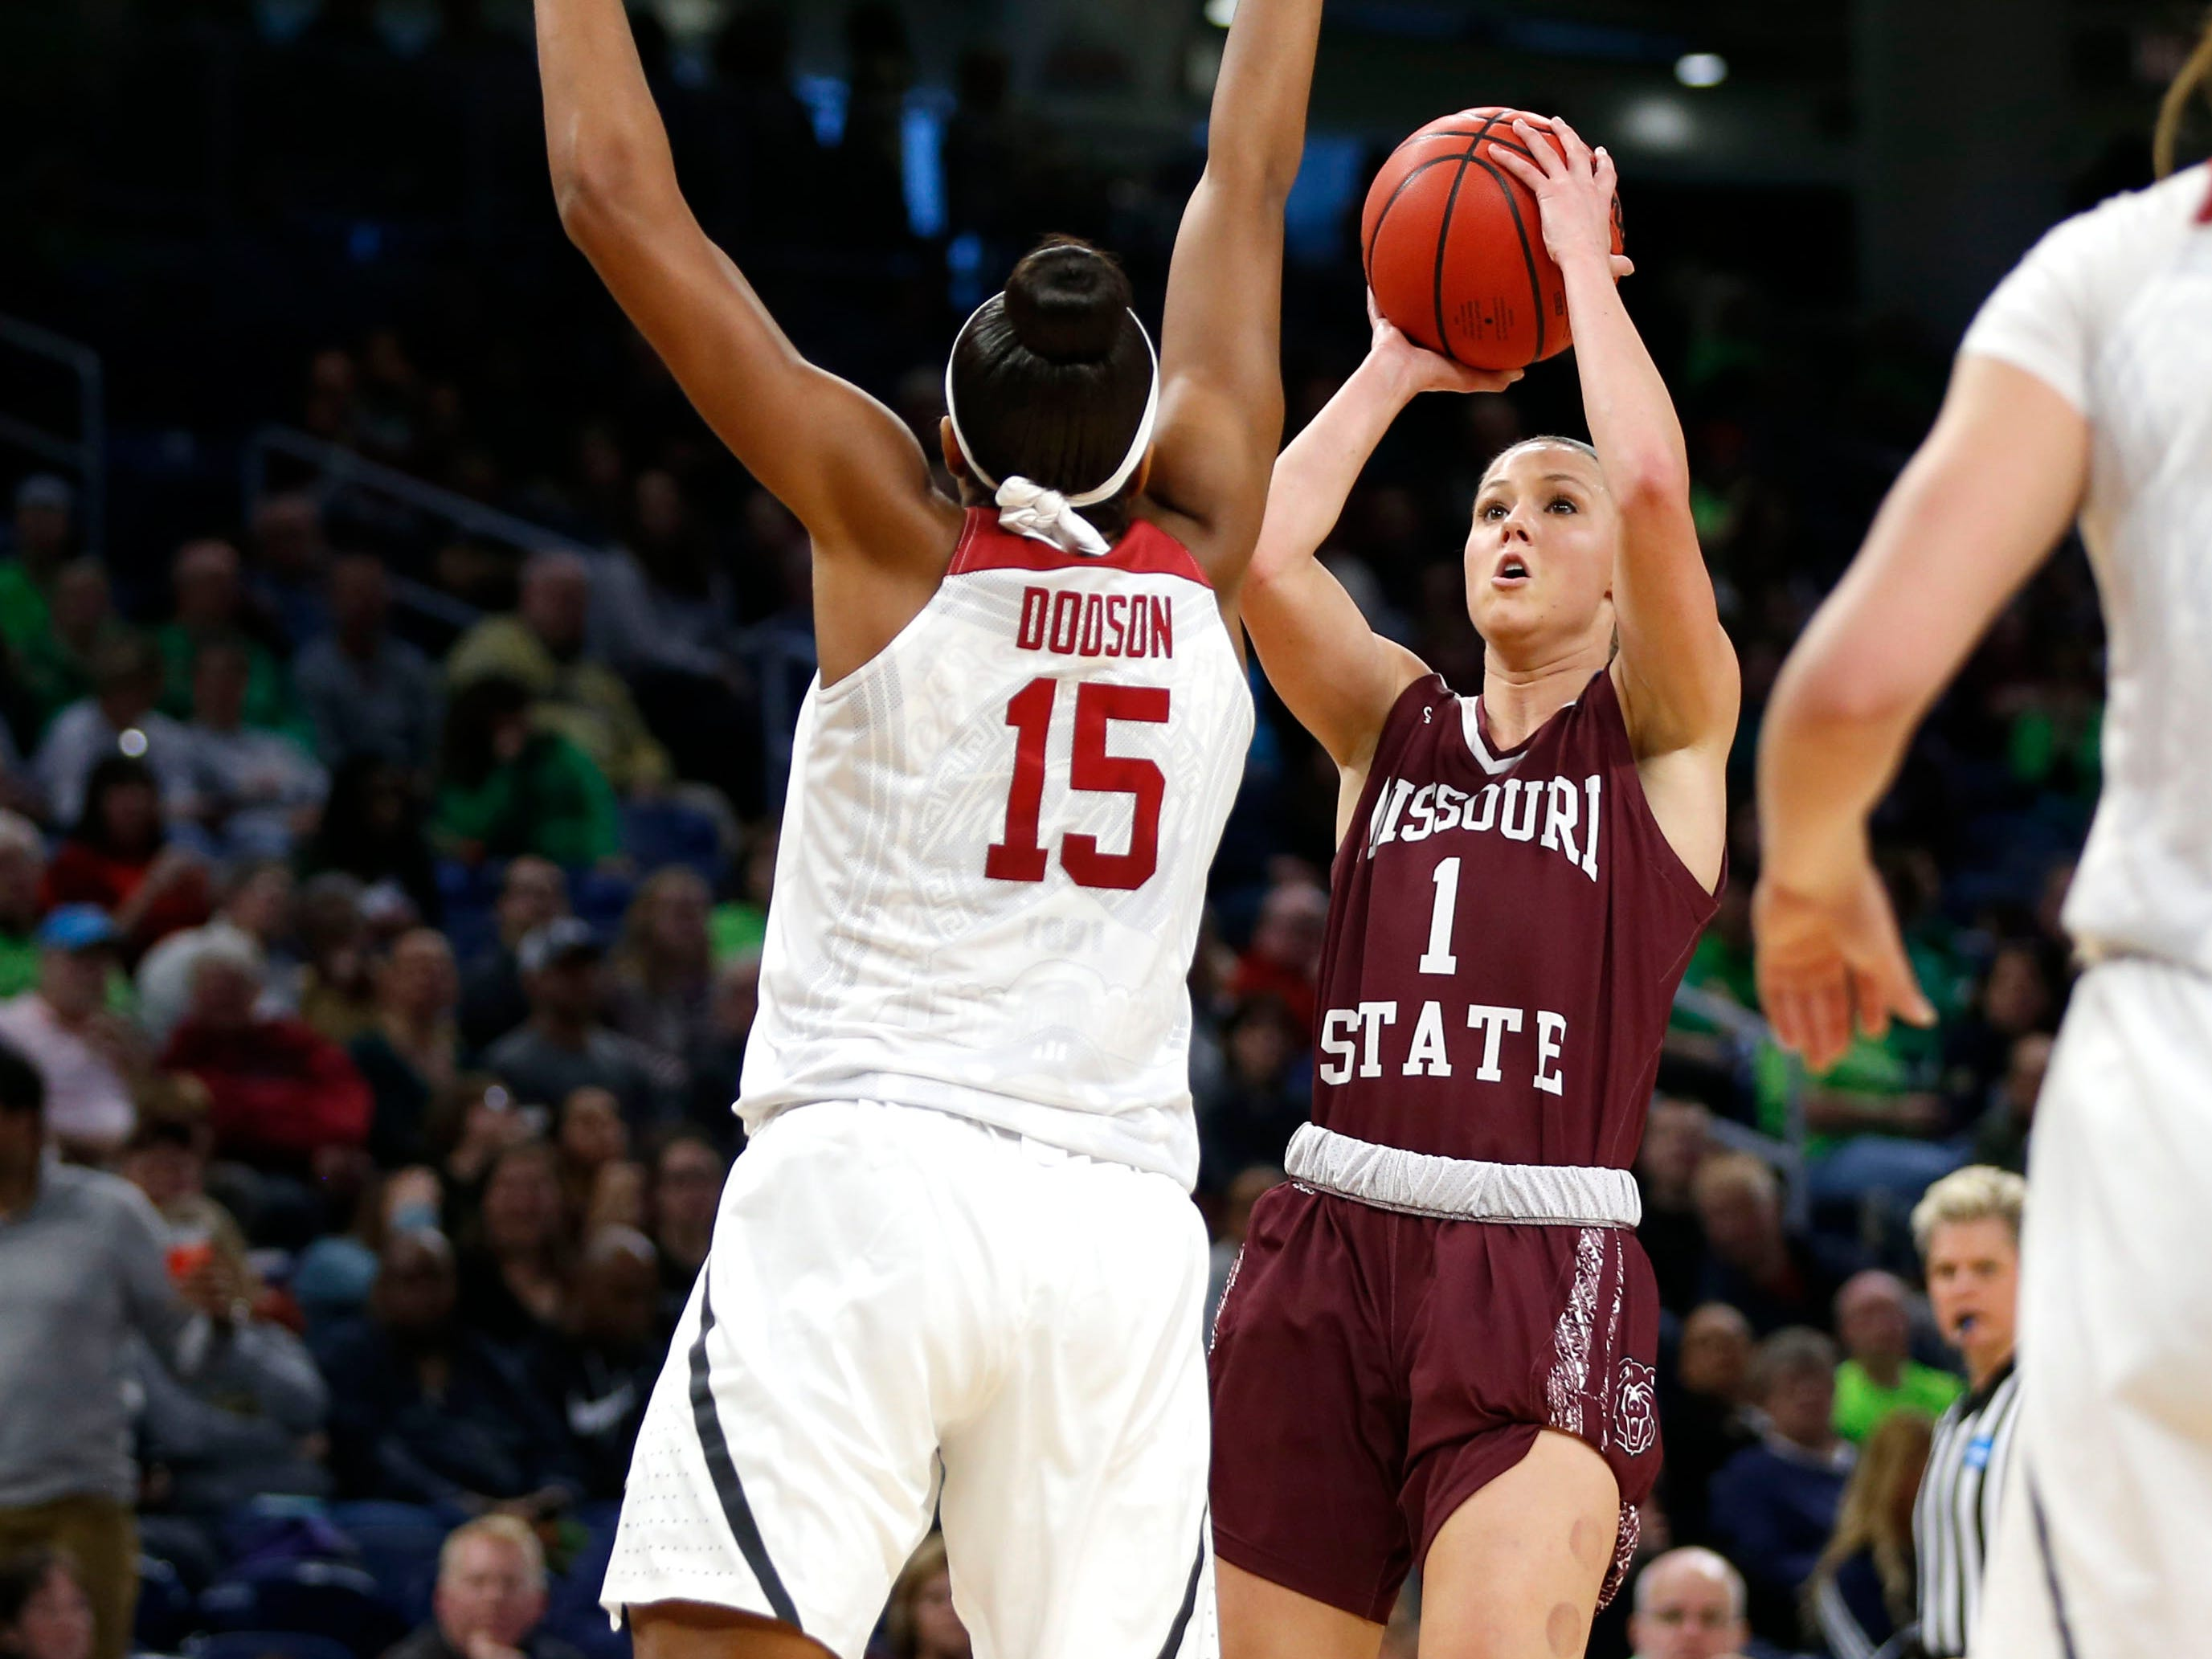 Missouri State Lady Bear Danielle Gitzen shoots over Stanford's Maya Dodson during the NCAA Division I Women's Regional at Wintrust Arena in Chicago, Ill. on Saturday, March 30, 2019.